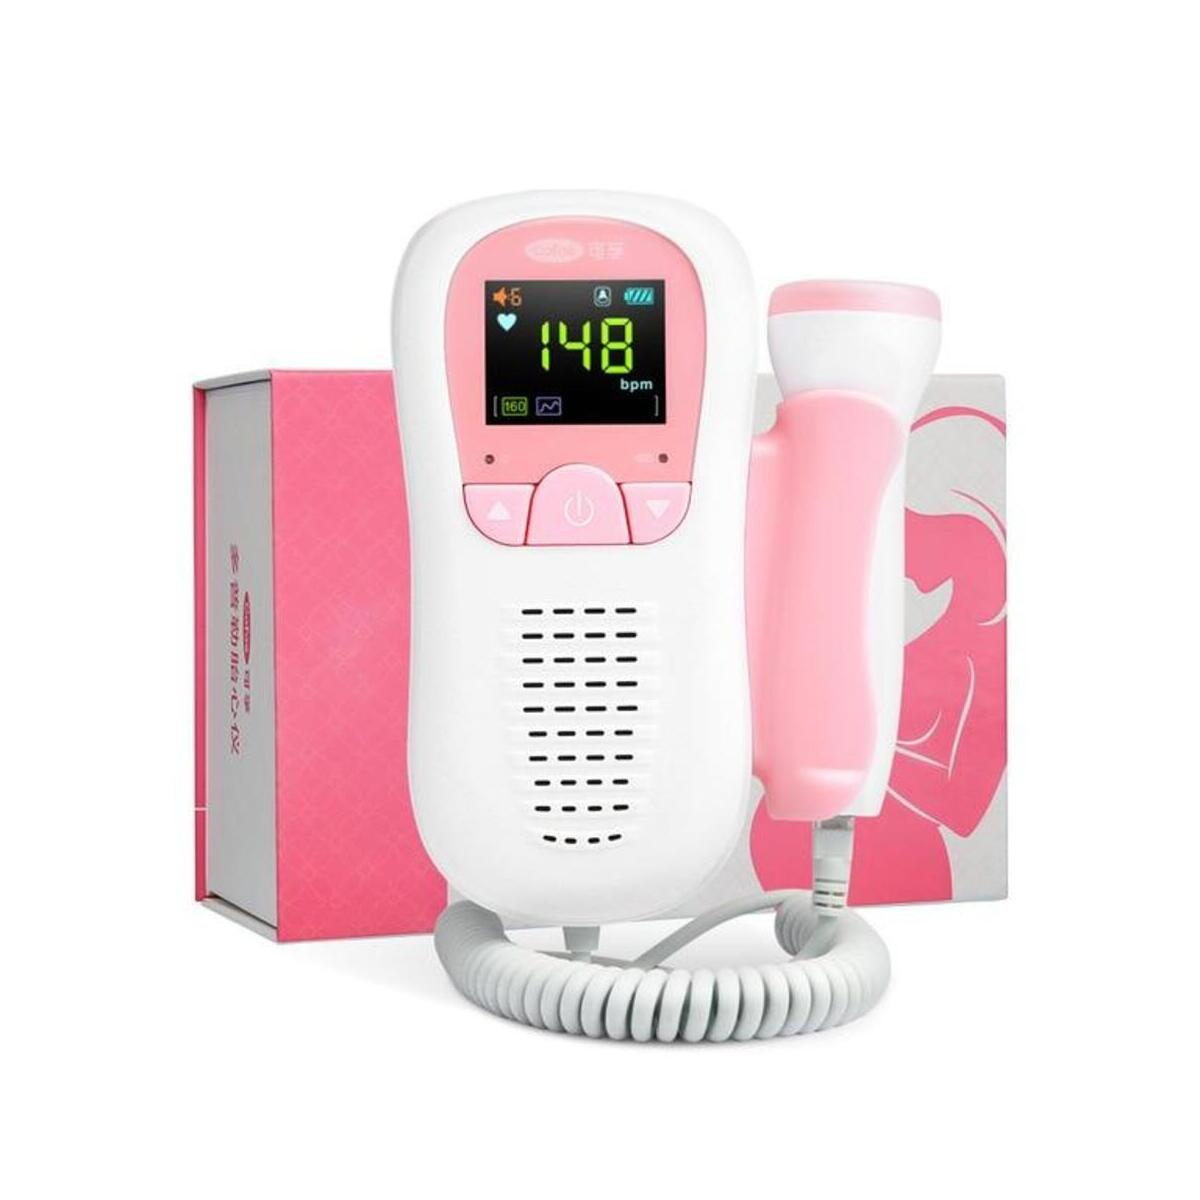 Baby Doppler Portable Heartbeat Monitor Fetal Sound Heart Rate Detector LCD Display No Radiation